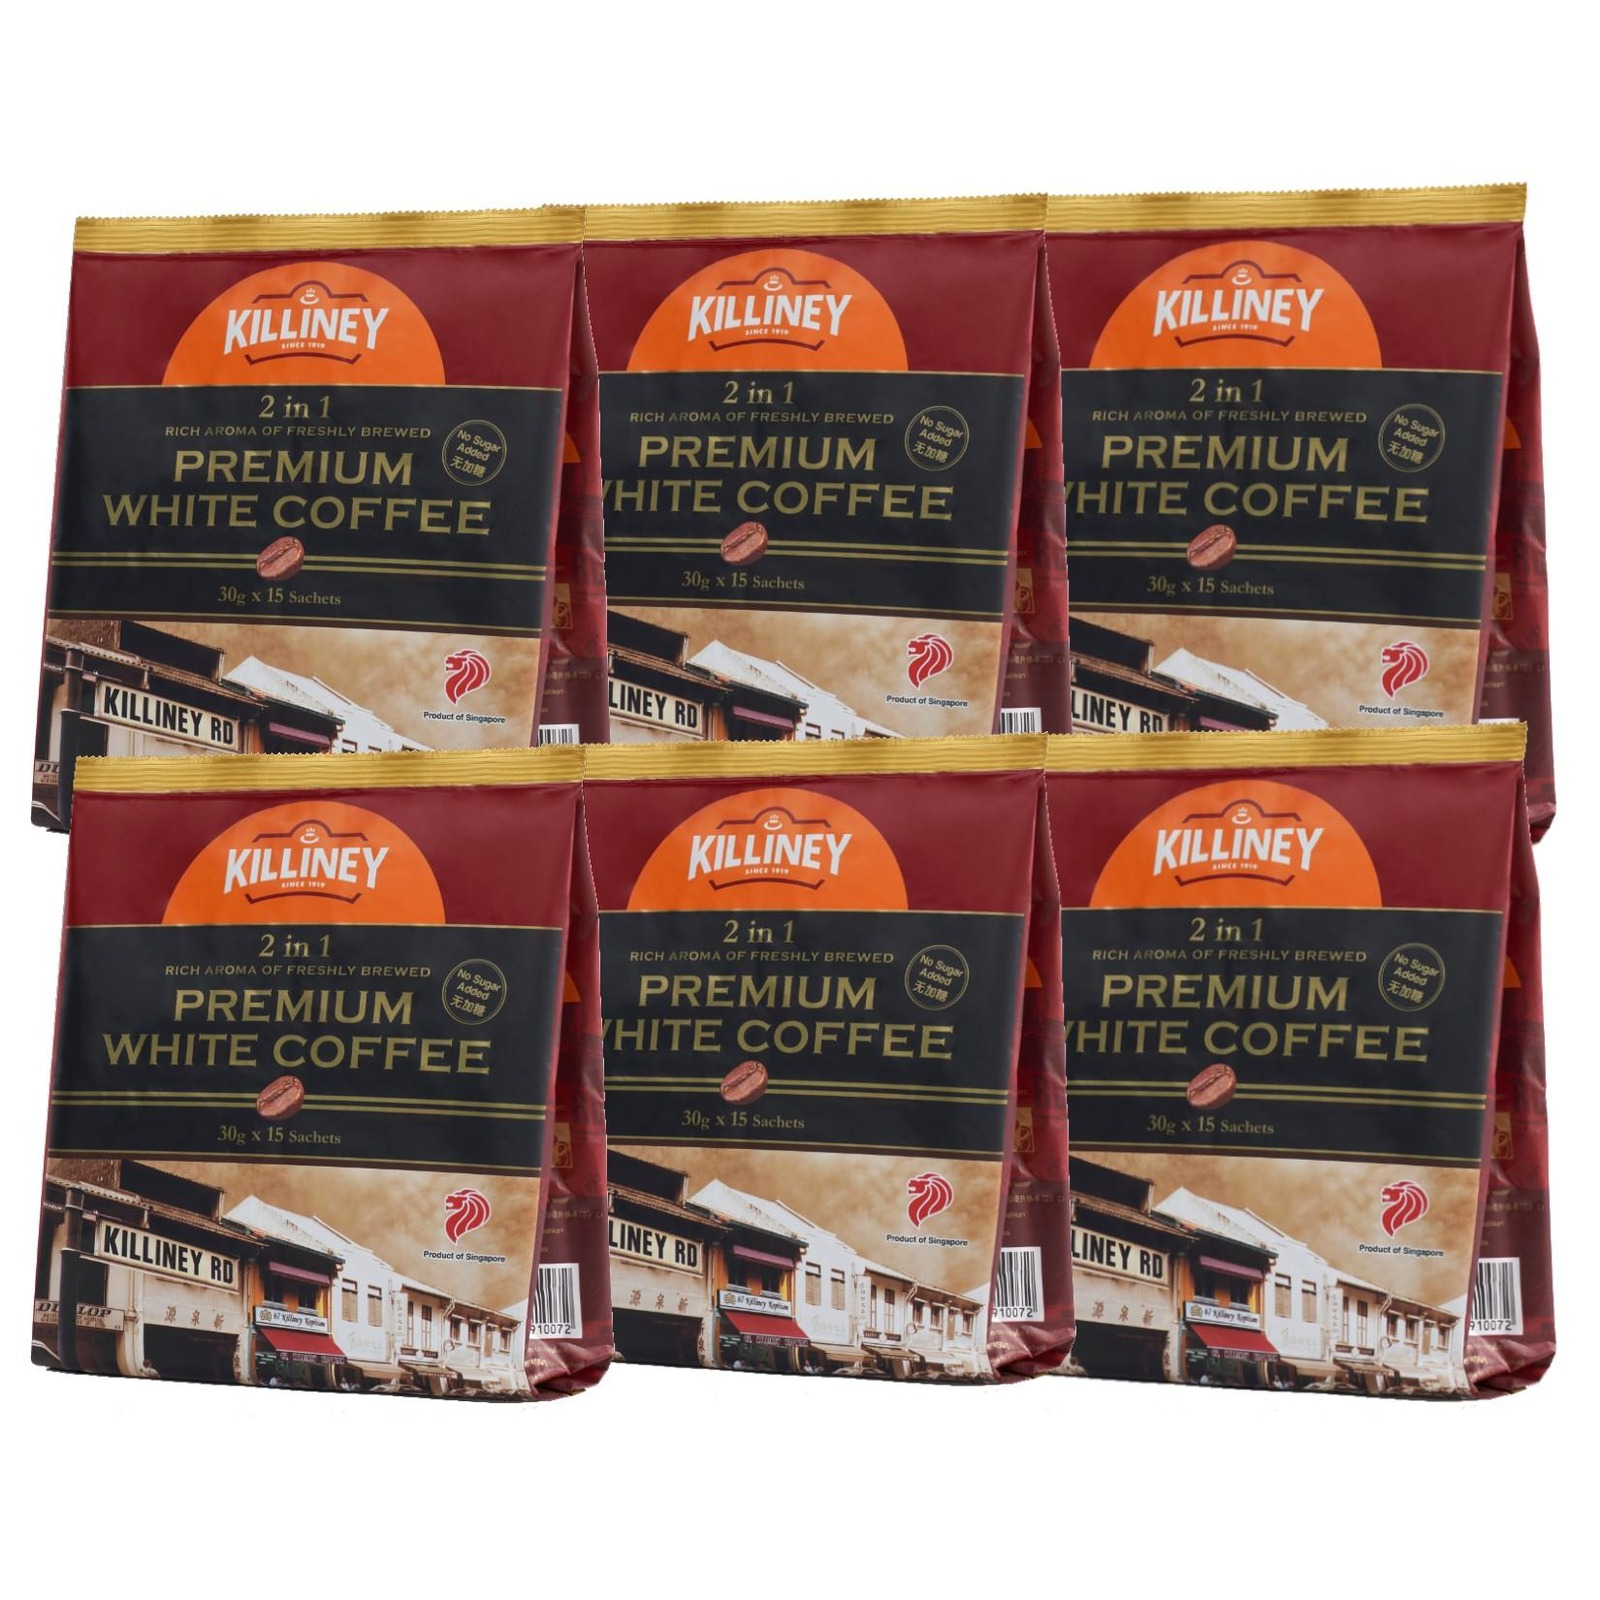 Killiney 2-in-1 White Coffee Family Bundle